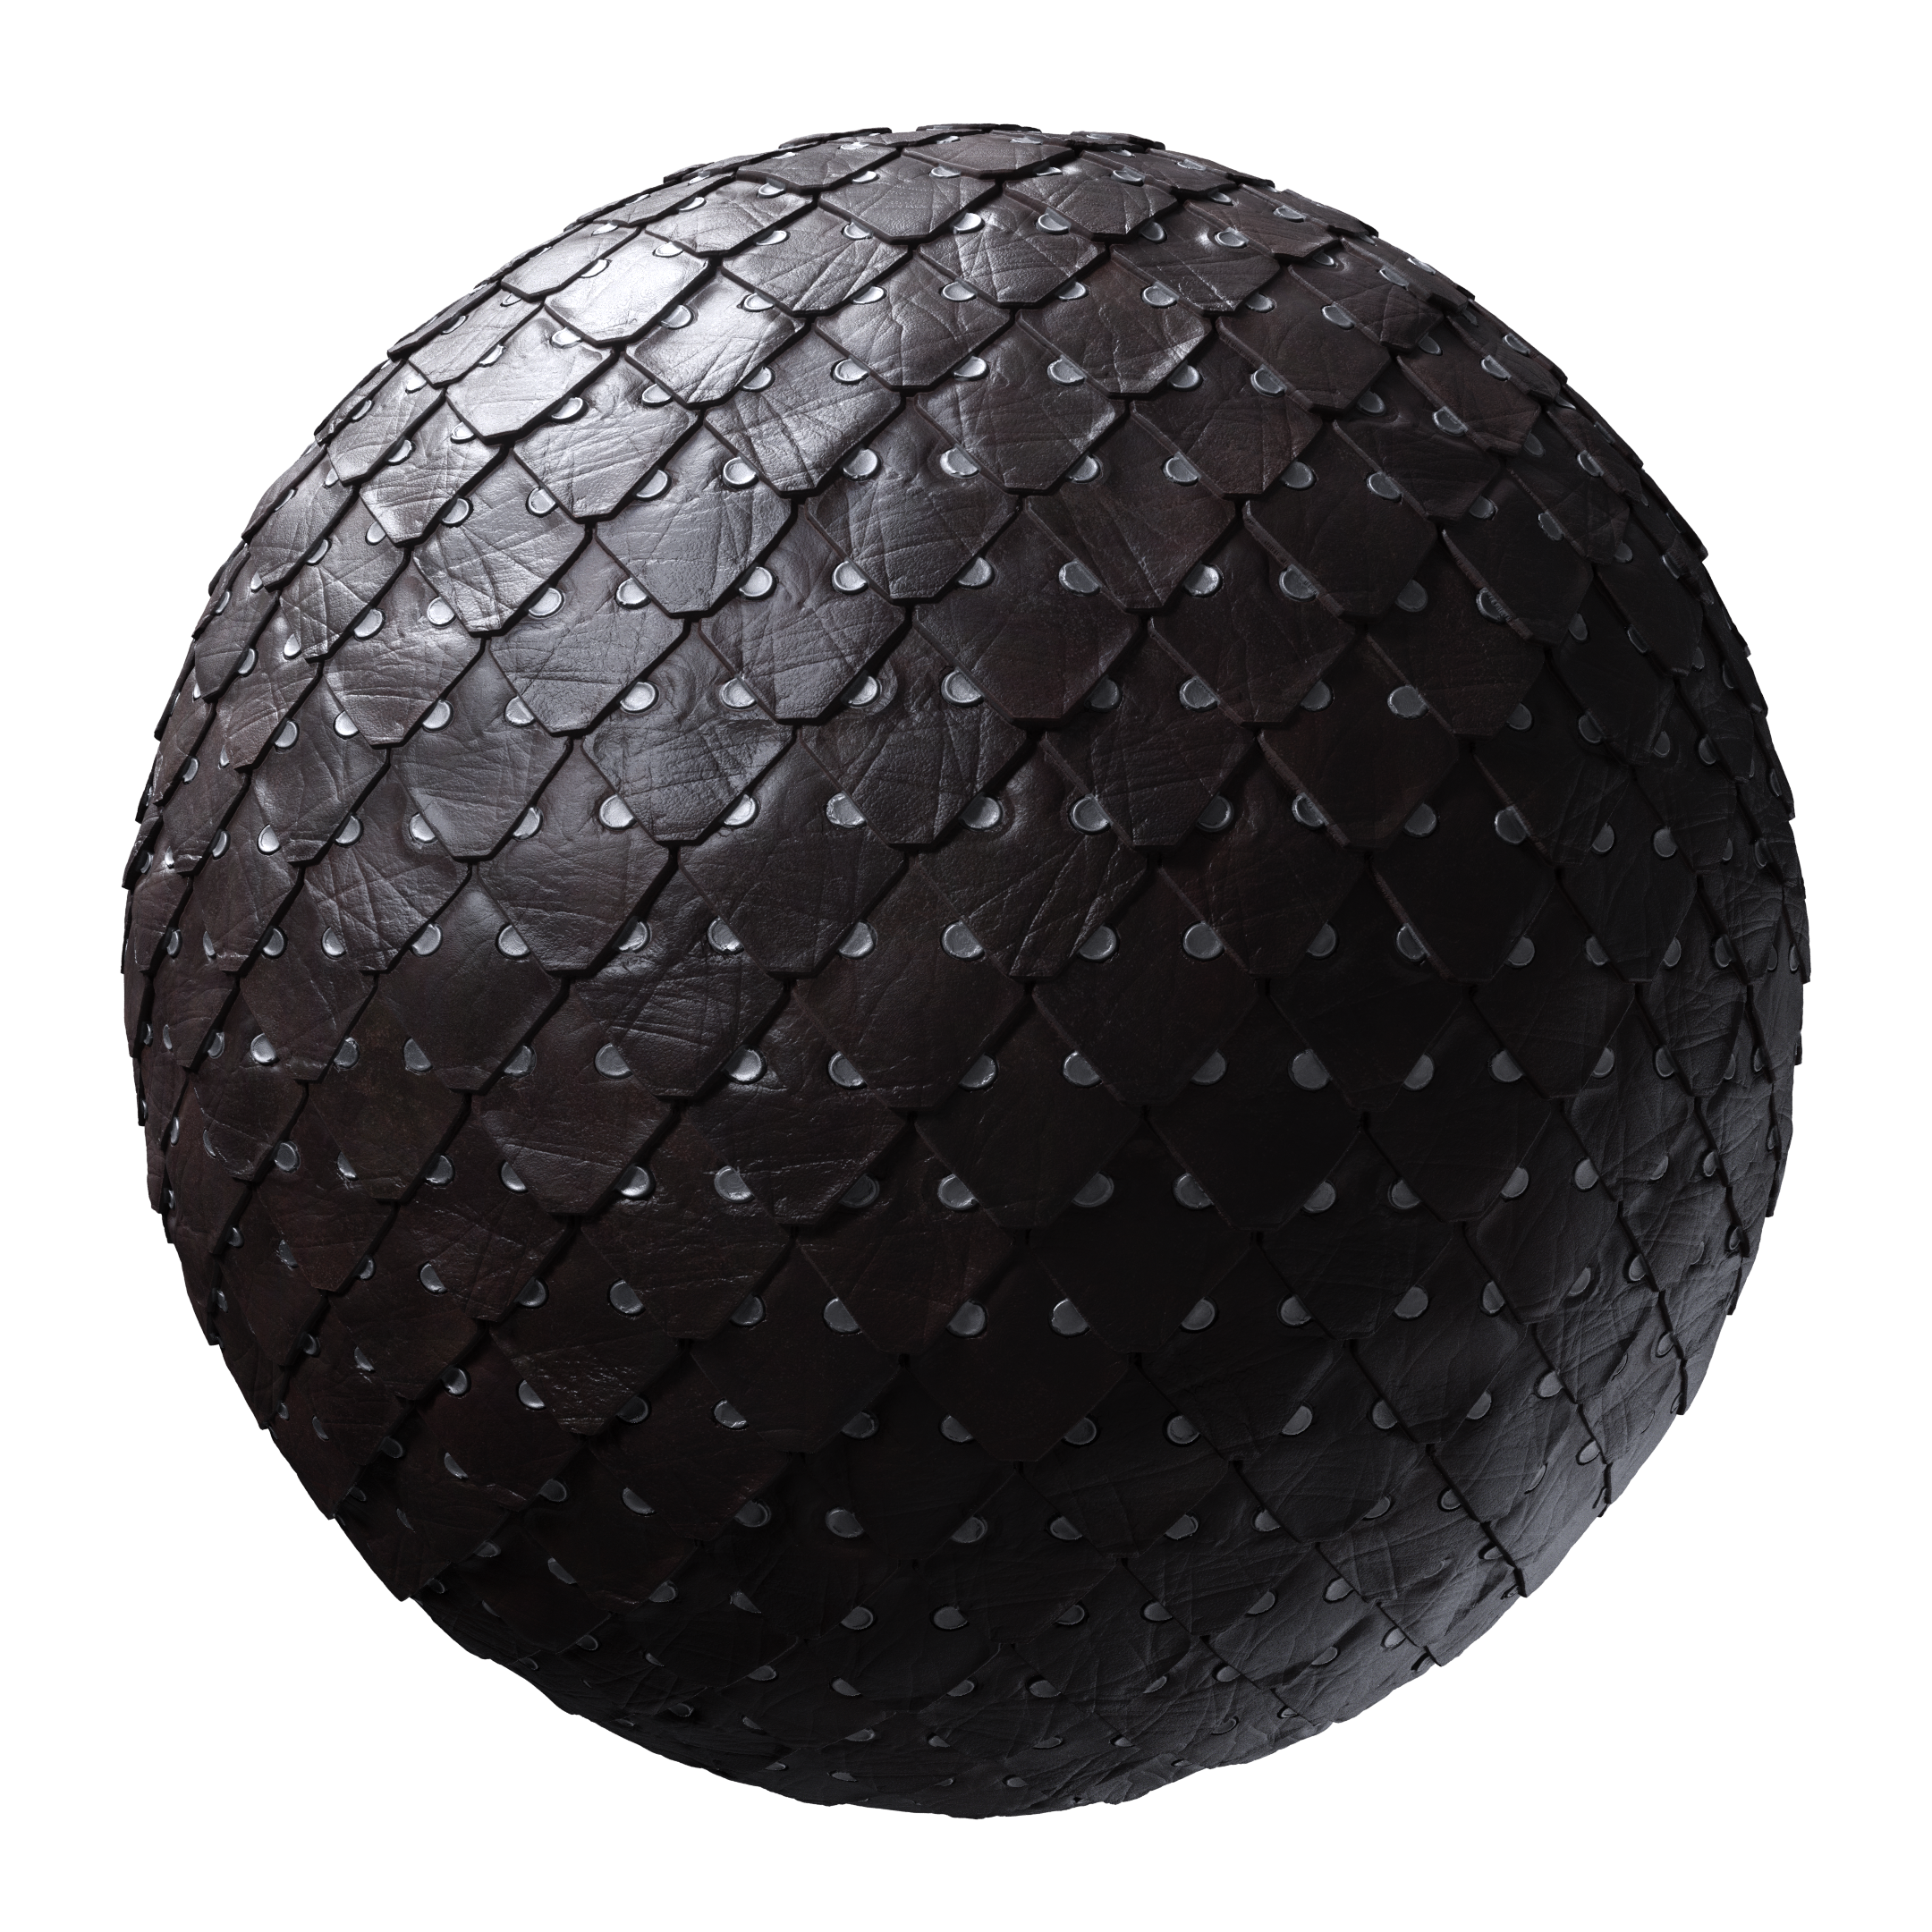 Tcom_Leather_ArmourScale_thumb1.png